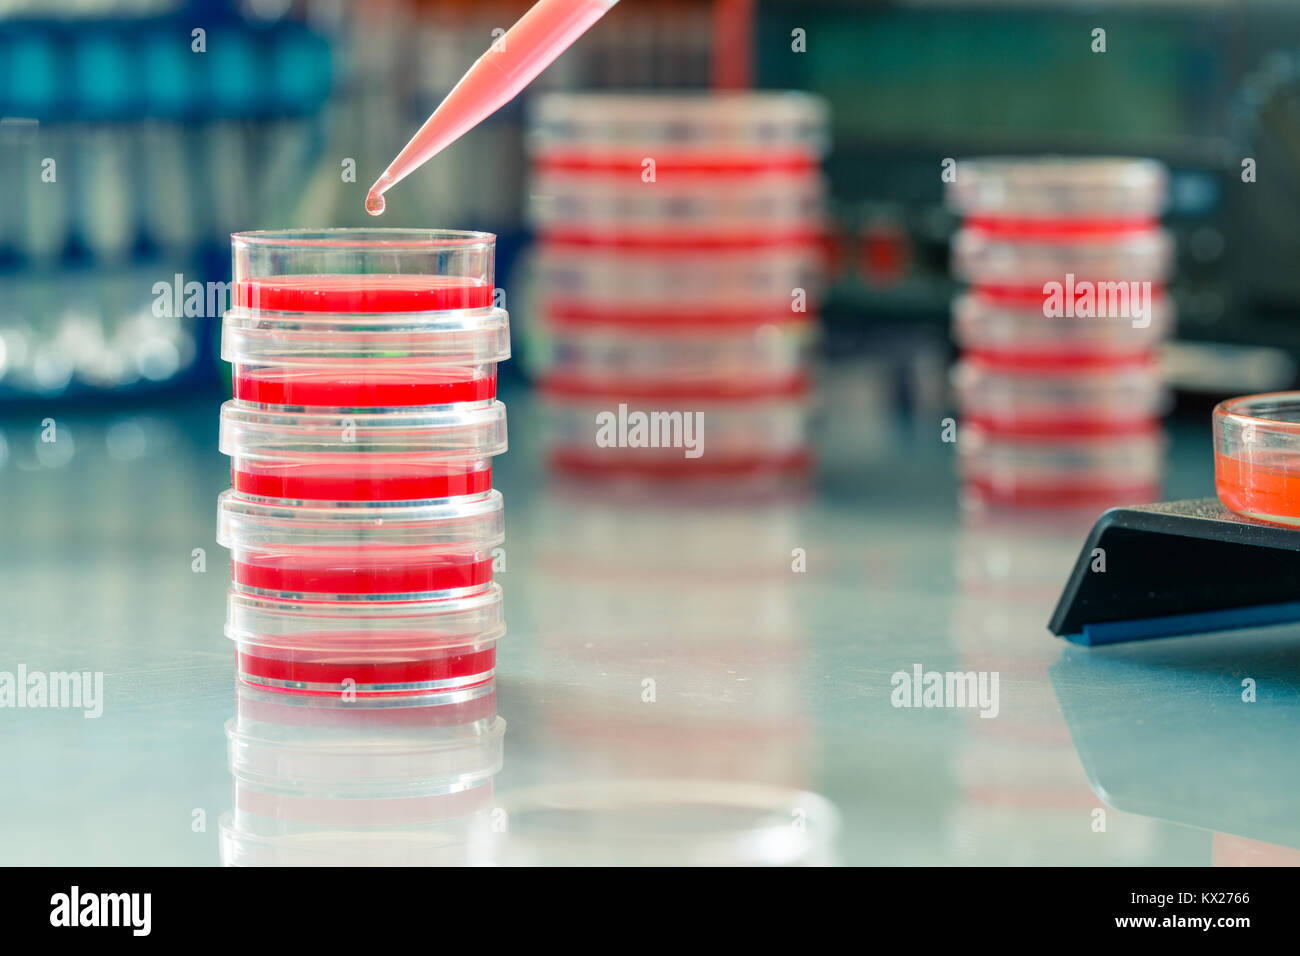 Laboratory of polymer chemistry - Stock Image